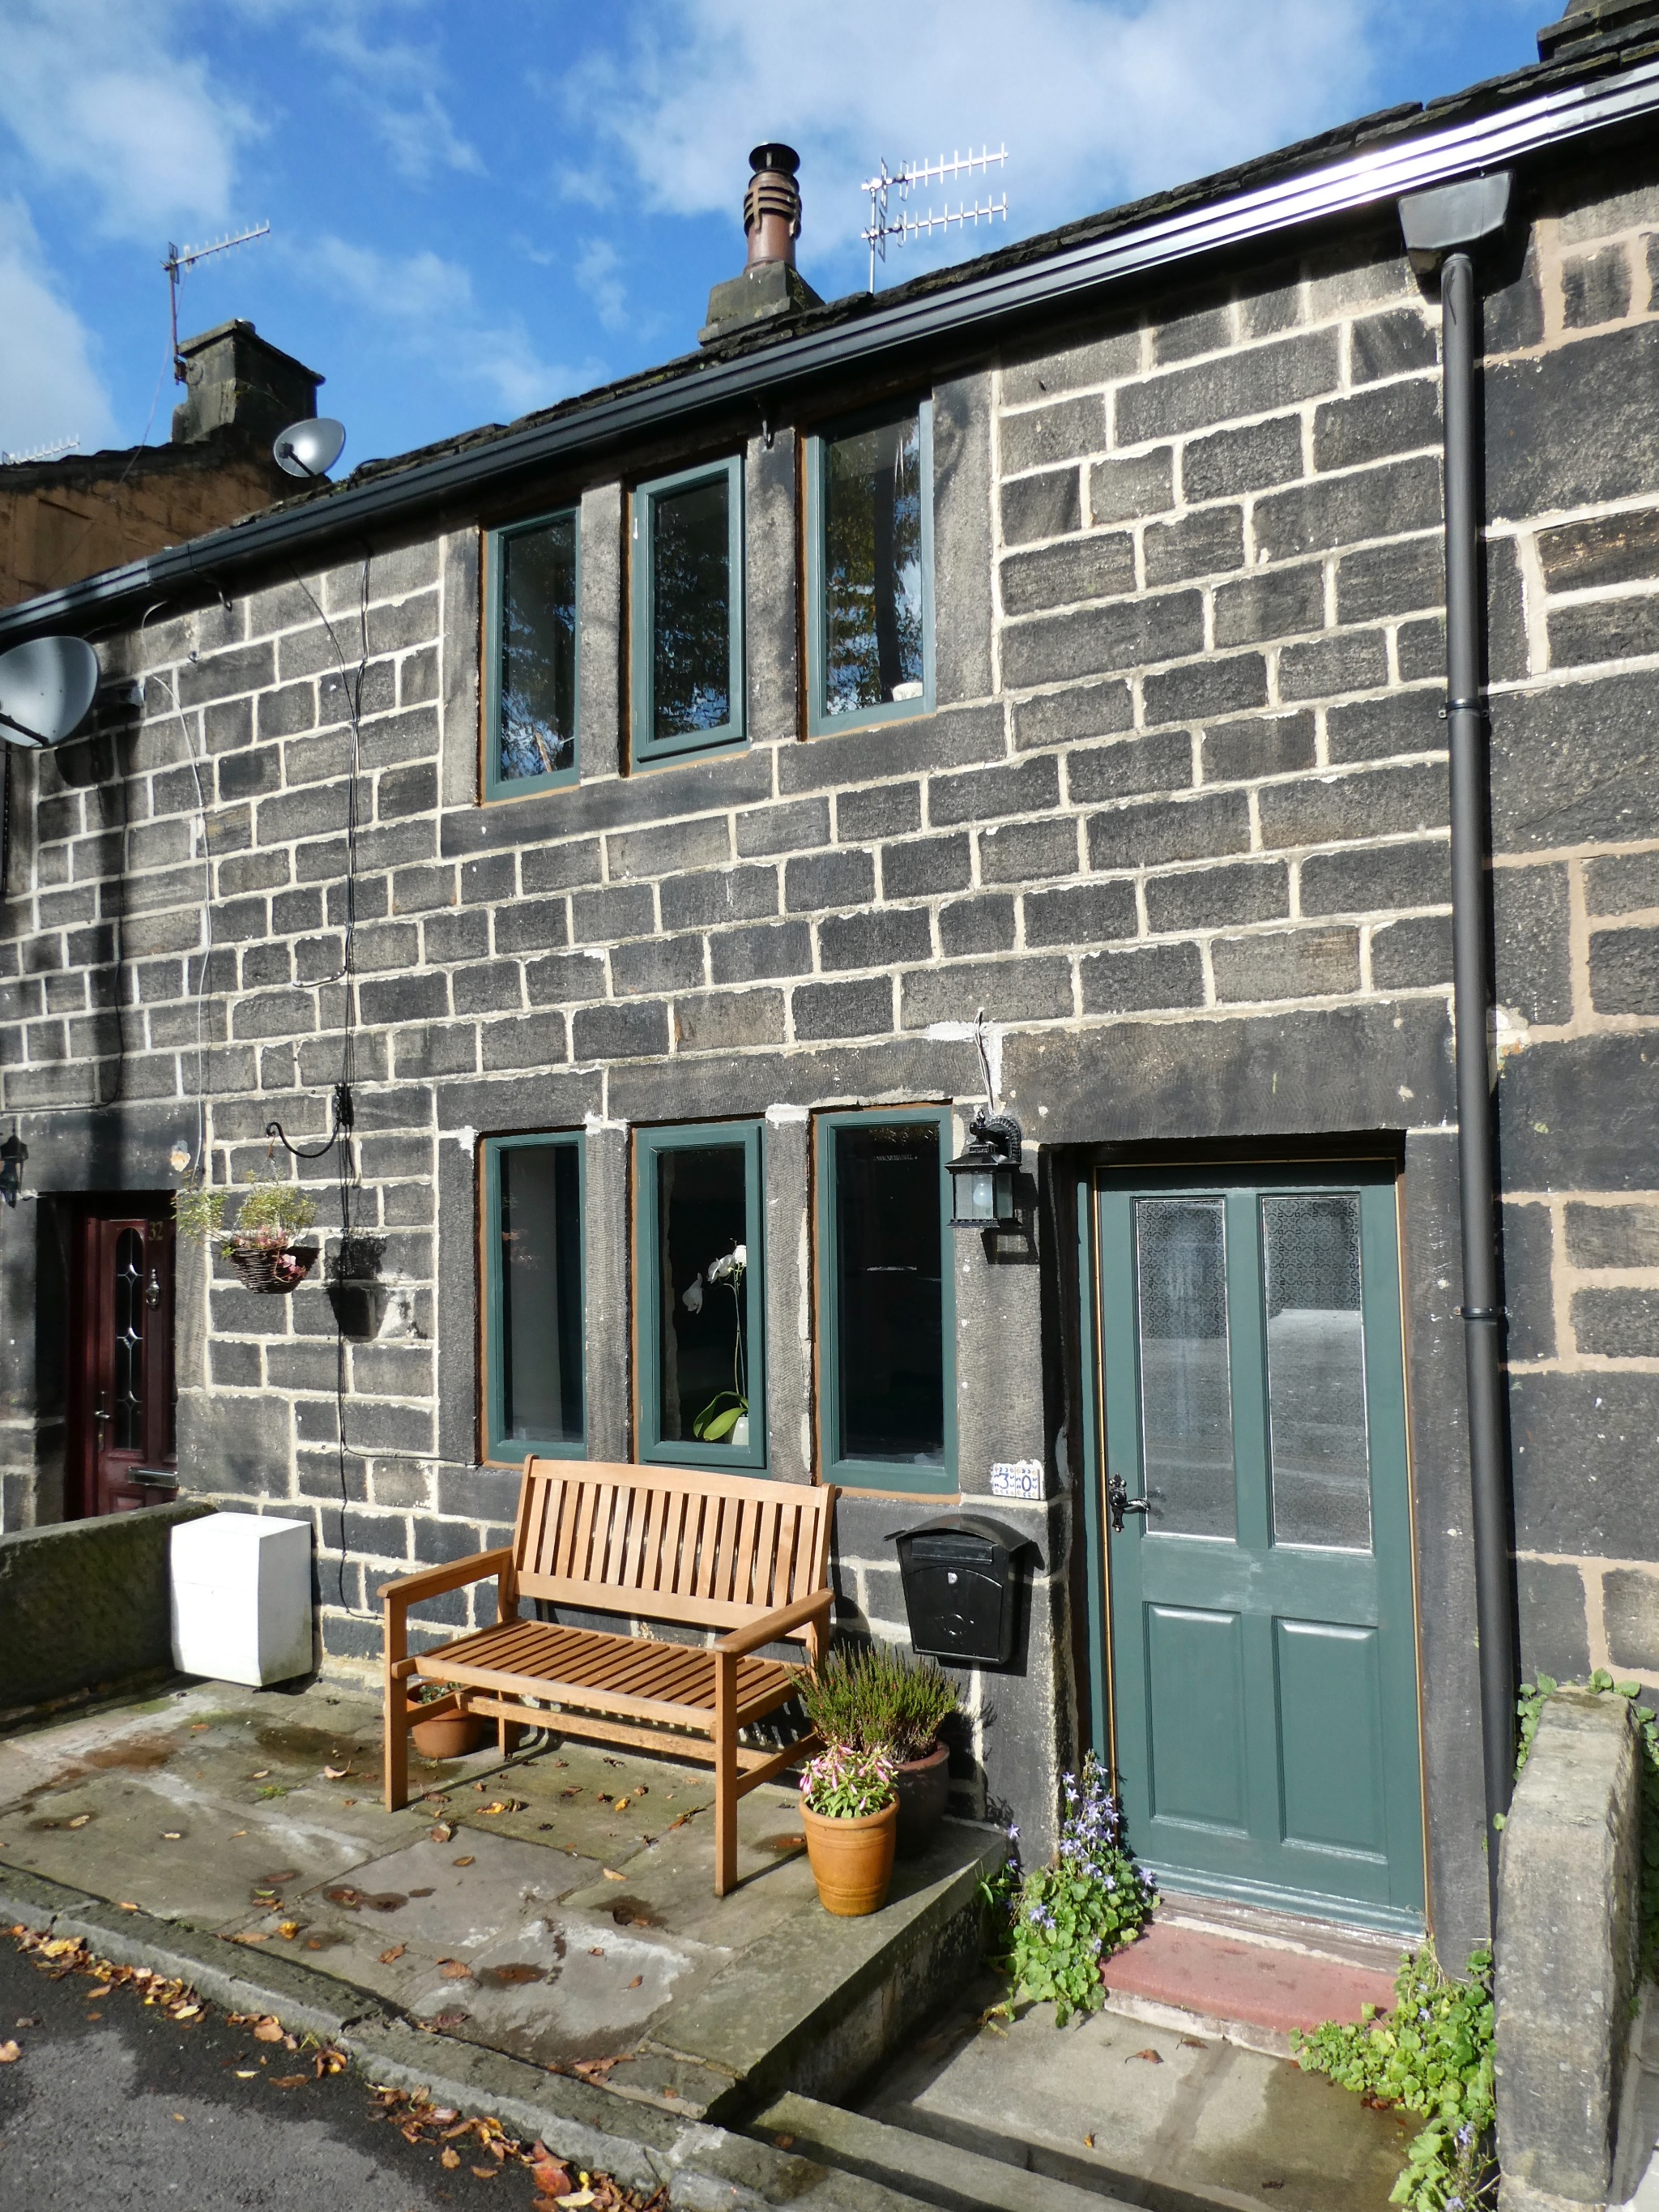 2 bedroom cottage house For Sale in Calderdale - Photograph 1.